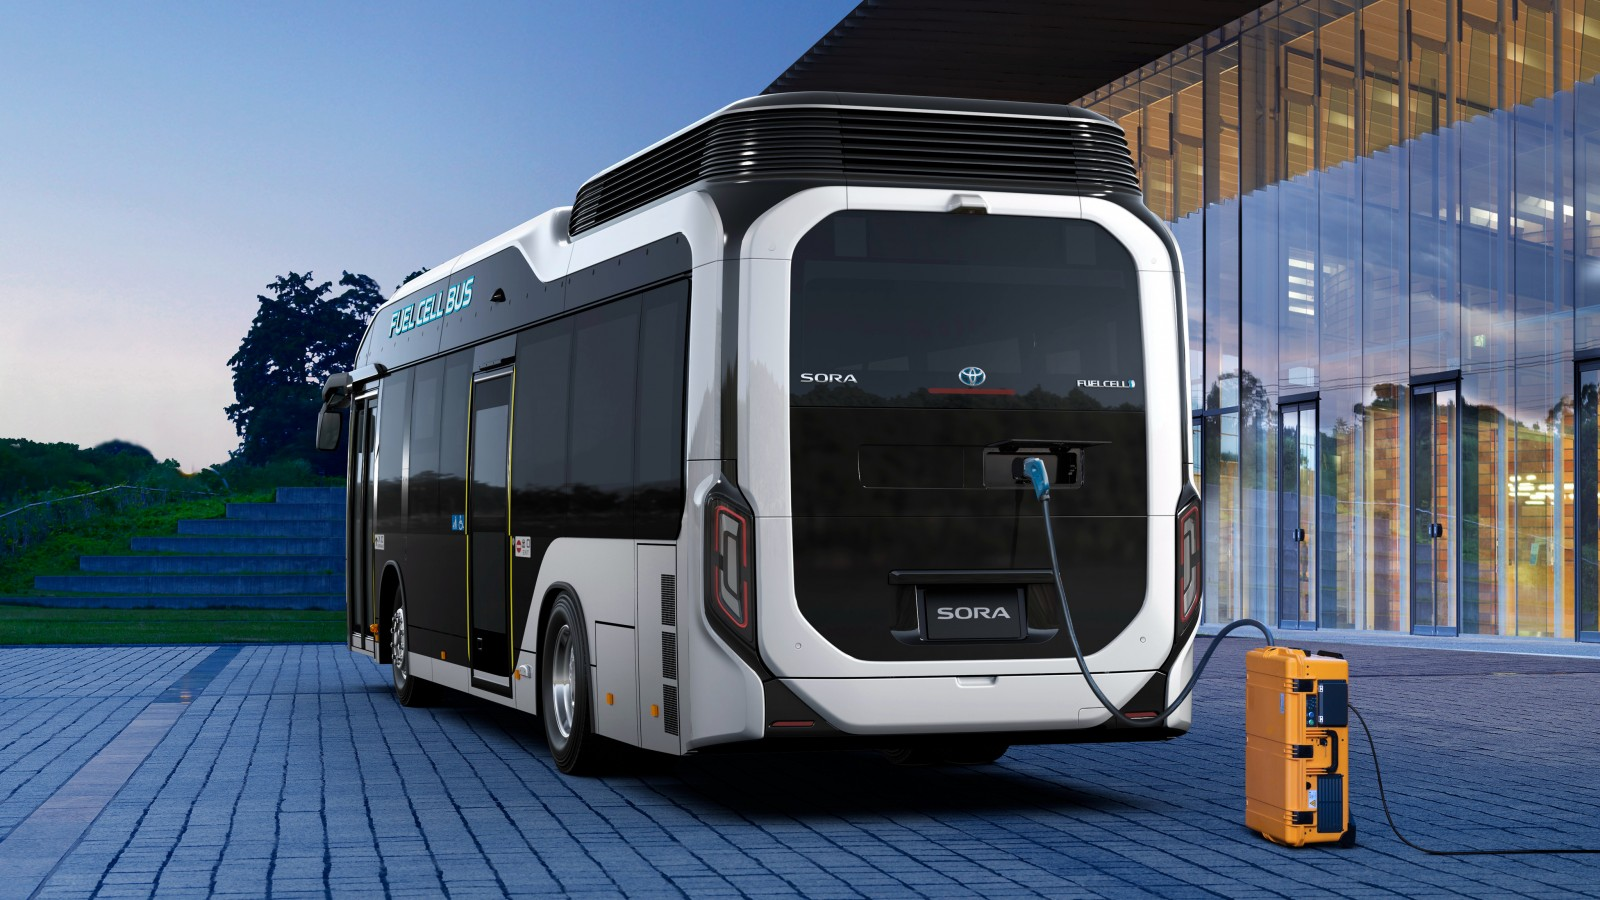 2018 Toyota Sora Fuel Cell Bus 4k Wallpaper Hd Car